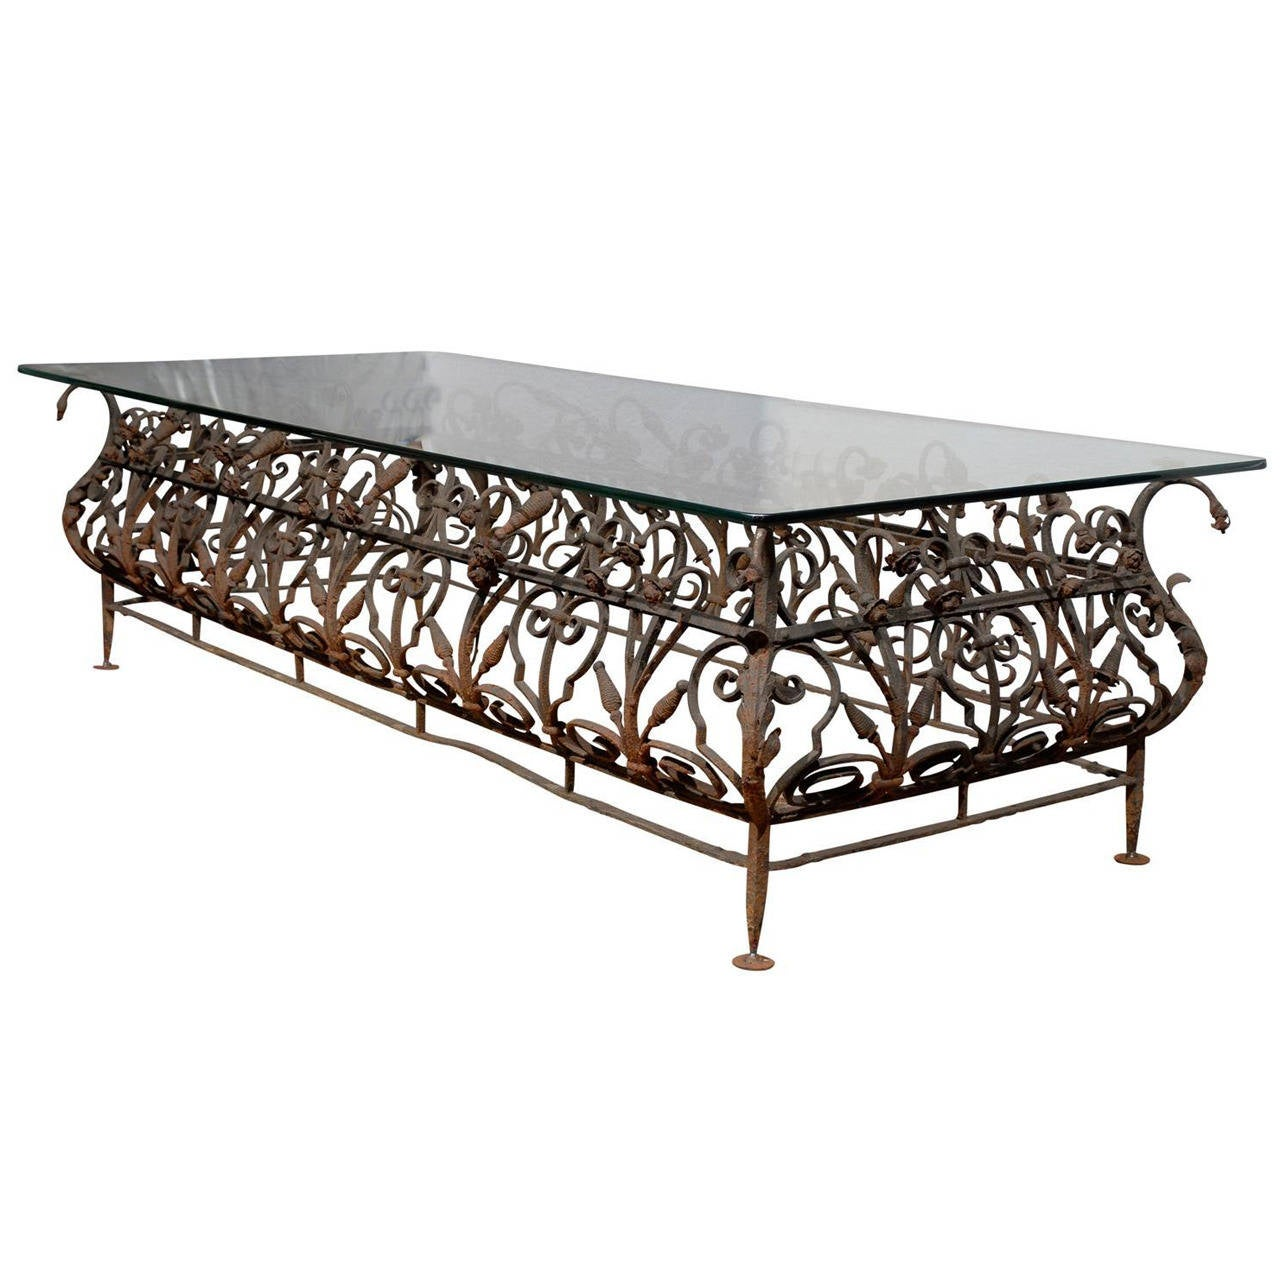 Austrian mid 19th century large size wrought iron and glass top coffee table for sale at 1stdibs Glass top for coffee table